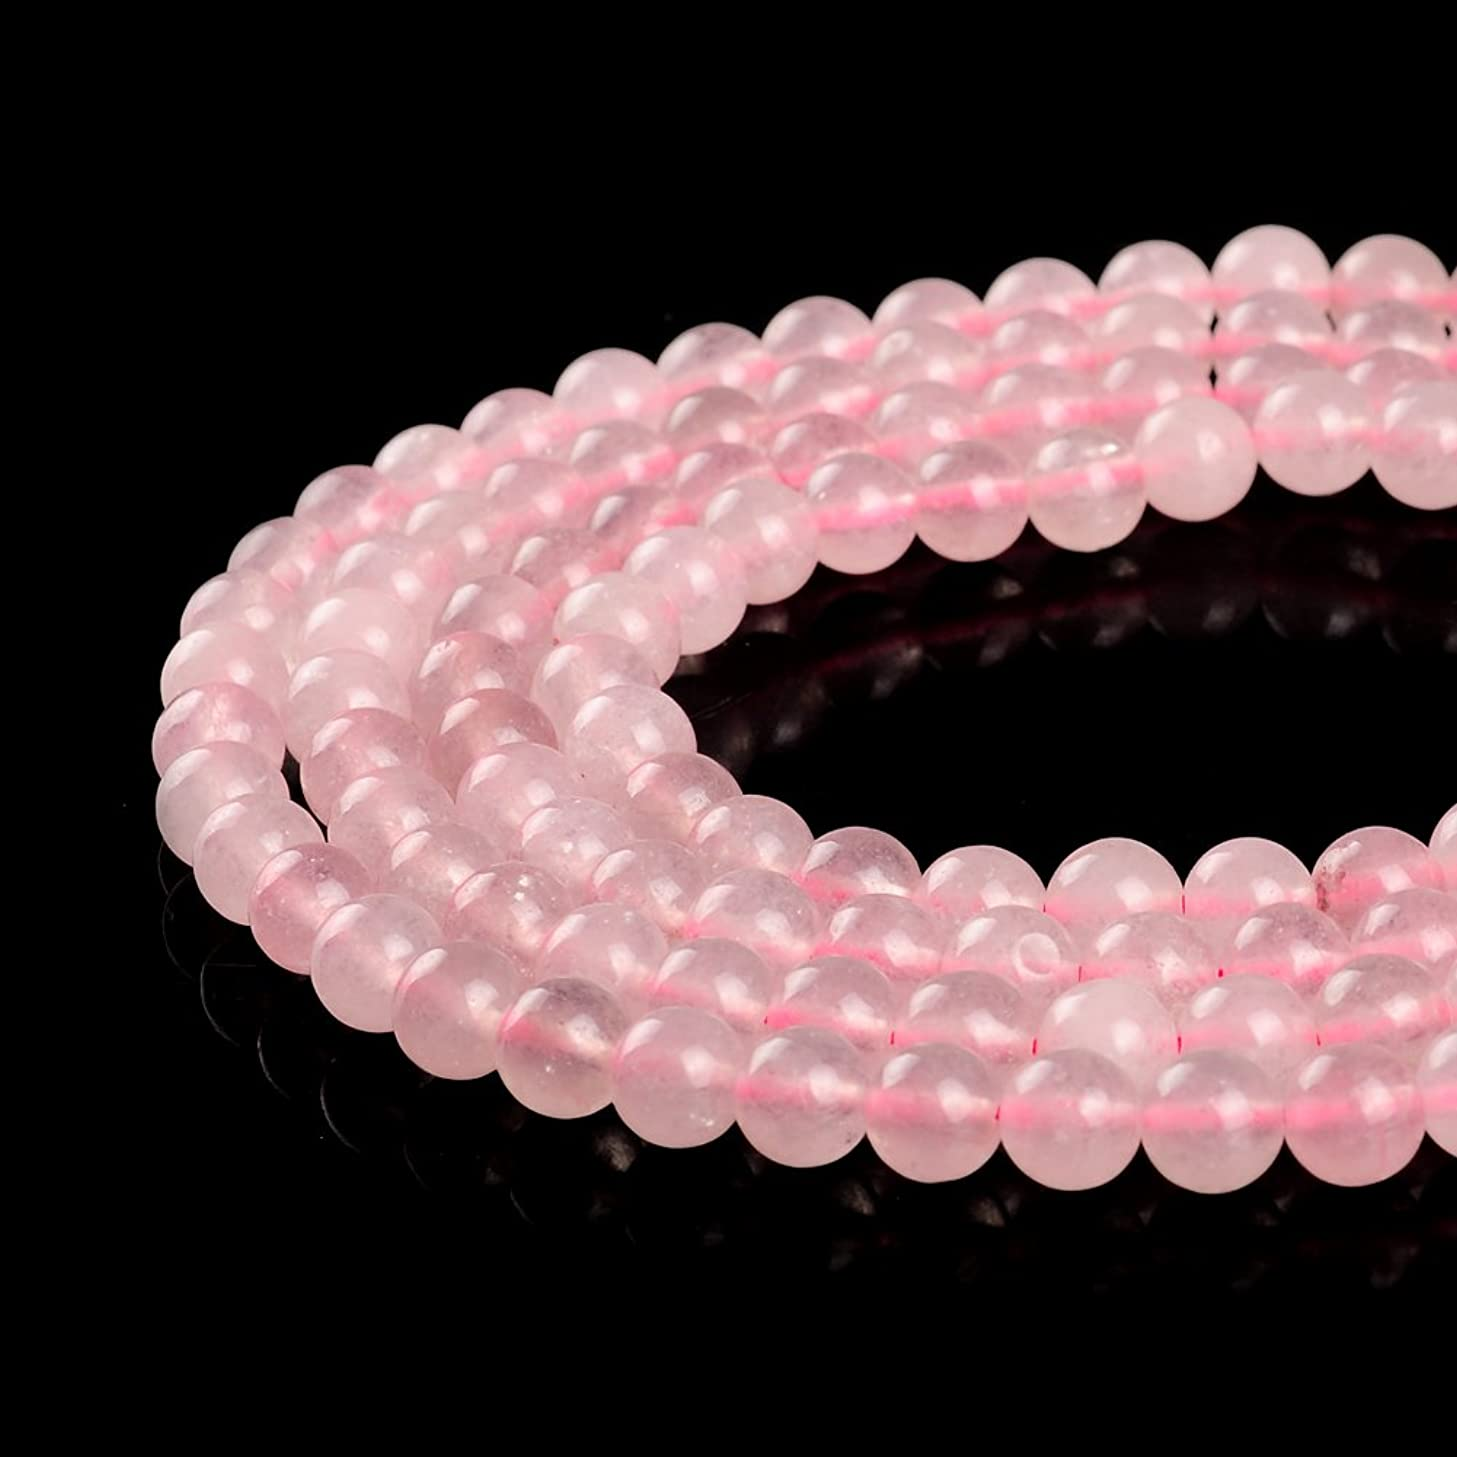 Natural Rose Quartz Stone Beads Pink Round Faced Matte Gemstone Loose Beads For Jewelry Making 2MM 3MM 4MM 6MM 8MM 10MM 12MM (4MM, Rose Round)